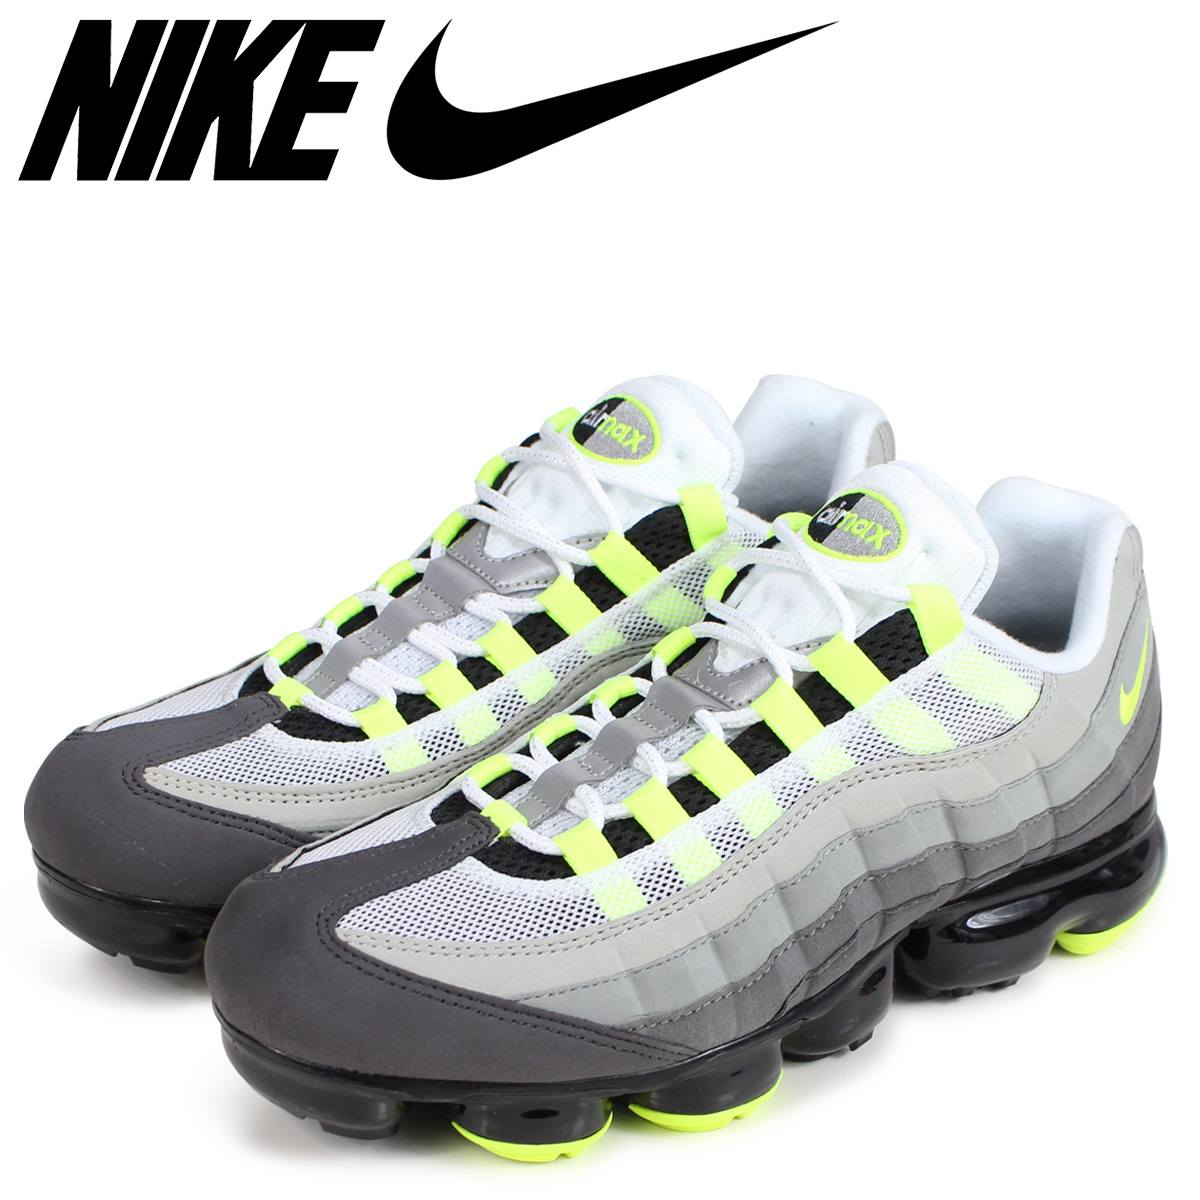 save off 44261 5ee0a NIKE Nike air vapor max 95 sneakers men AIR VAPORMAX 95 NEON AJ7292-001  neon yellow [the 9/6 additional arrival]